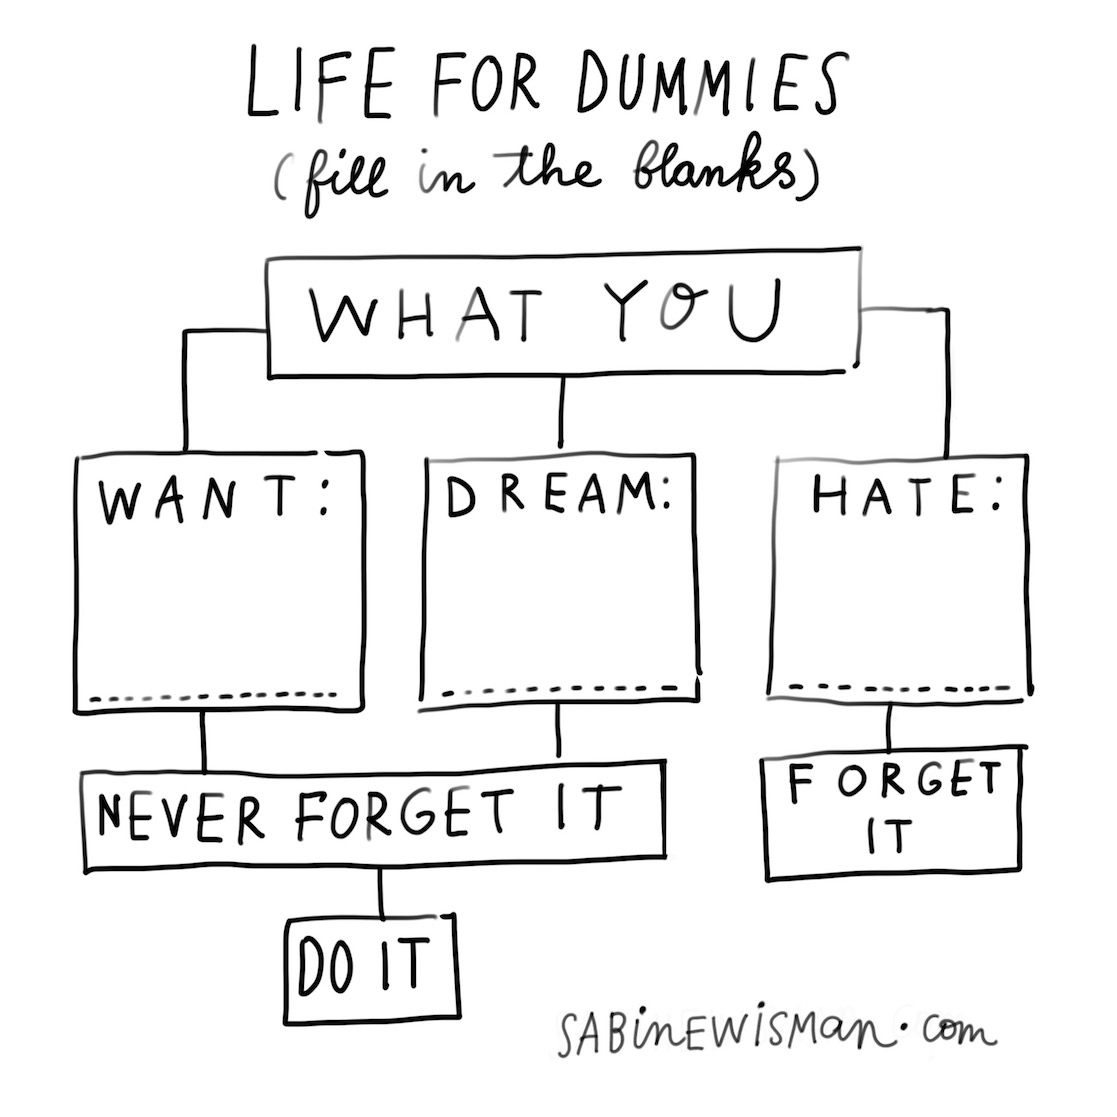 life for dummies infographic